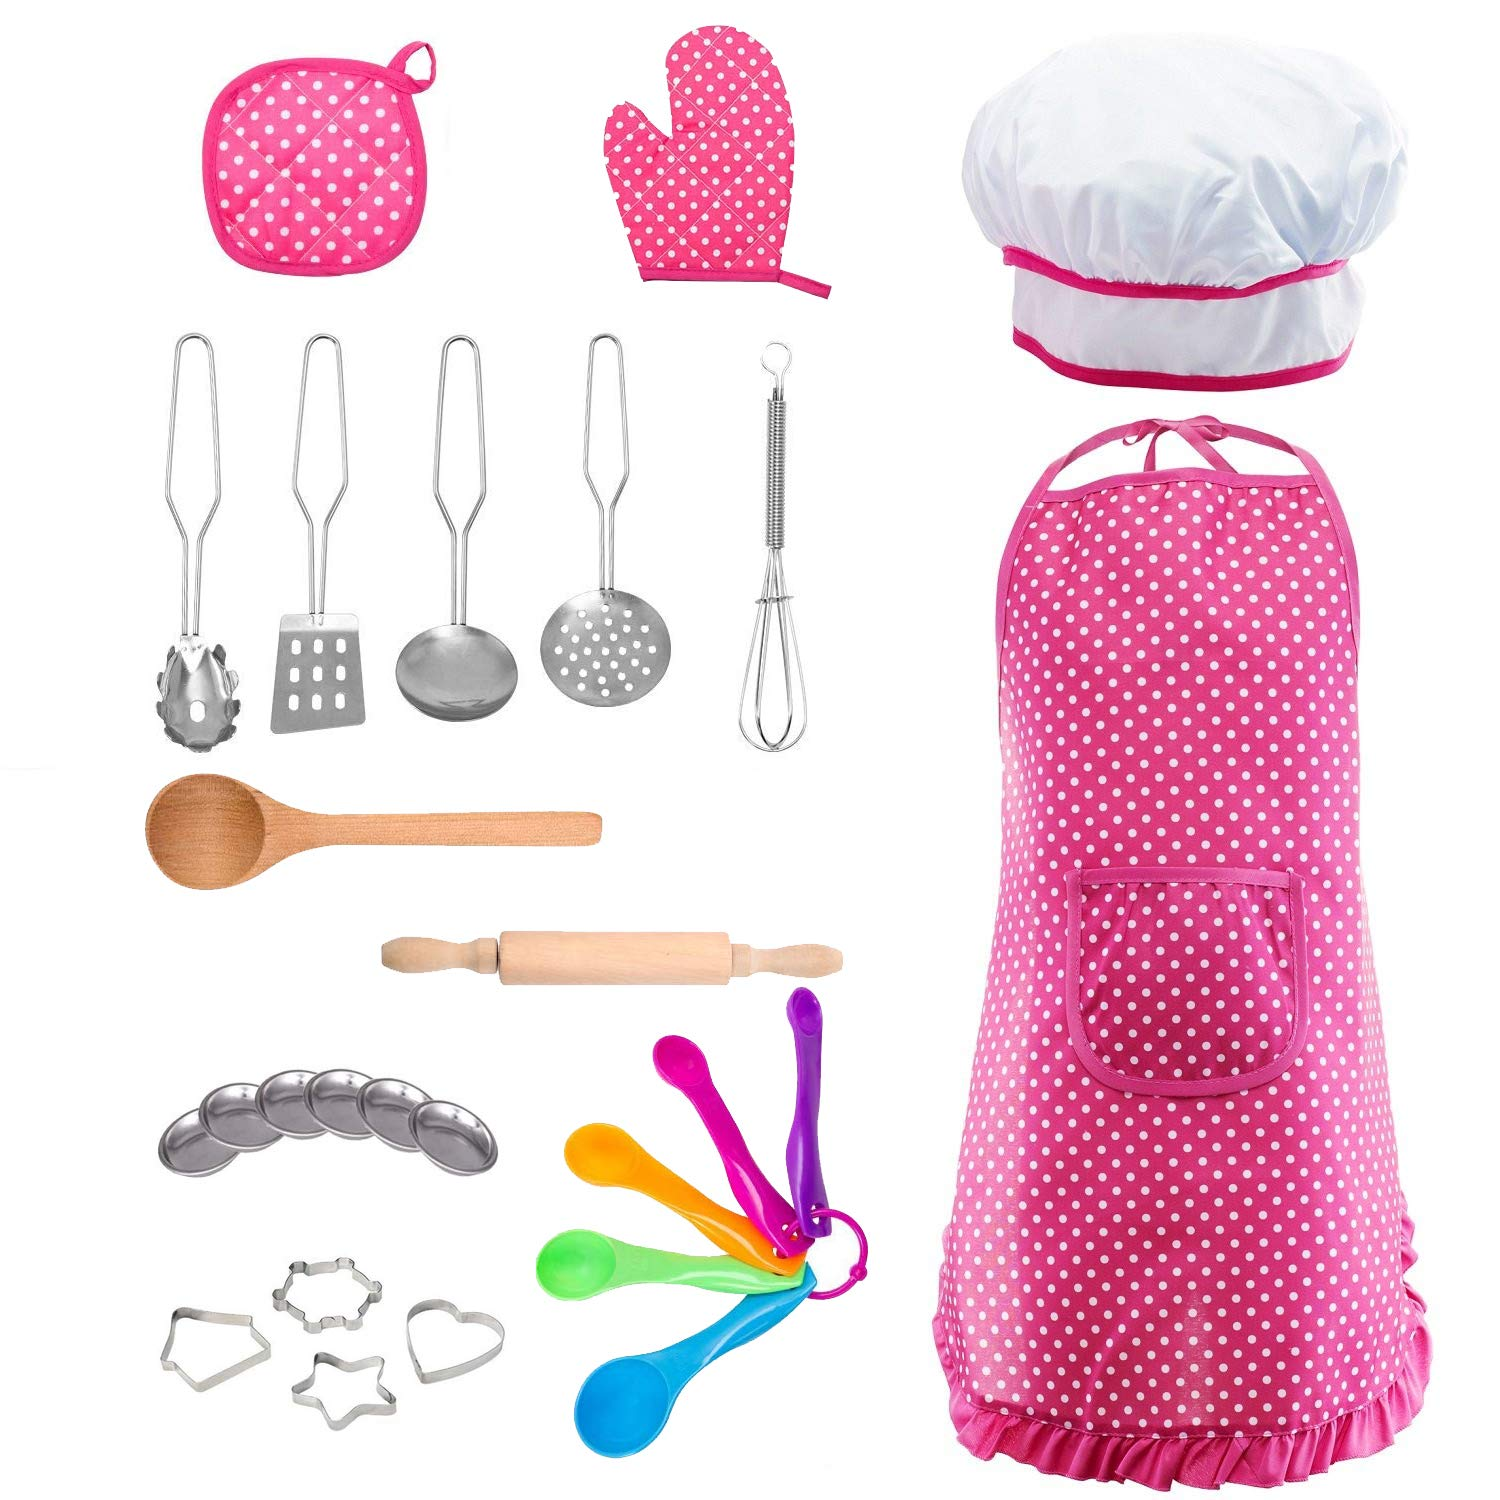 Kids Cooking and Baking Chef Set - 24 Pcs Includes Apron, Chef Hat, Oven Mitt, Pot Holders, Plates, Rolling Pin, Spoon, Cookie Cutters & Baking Utensil for Girls Age 2 3 4 5 6 + Years Old Kids Toys